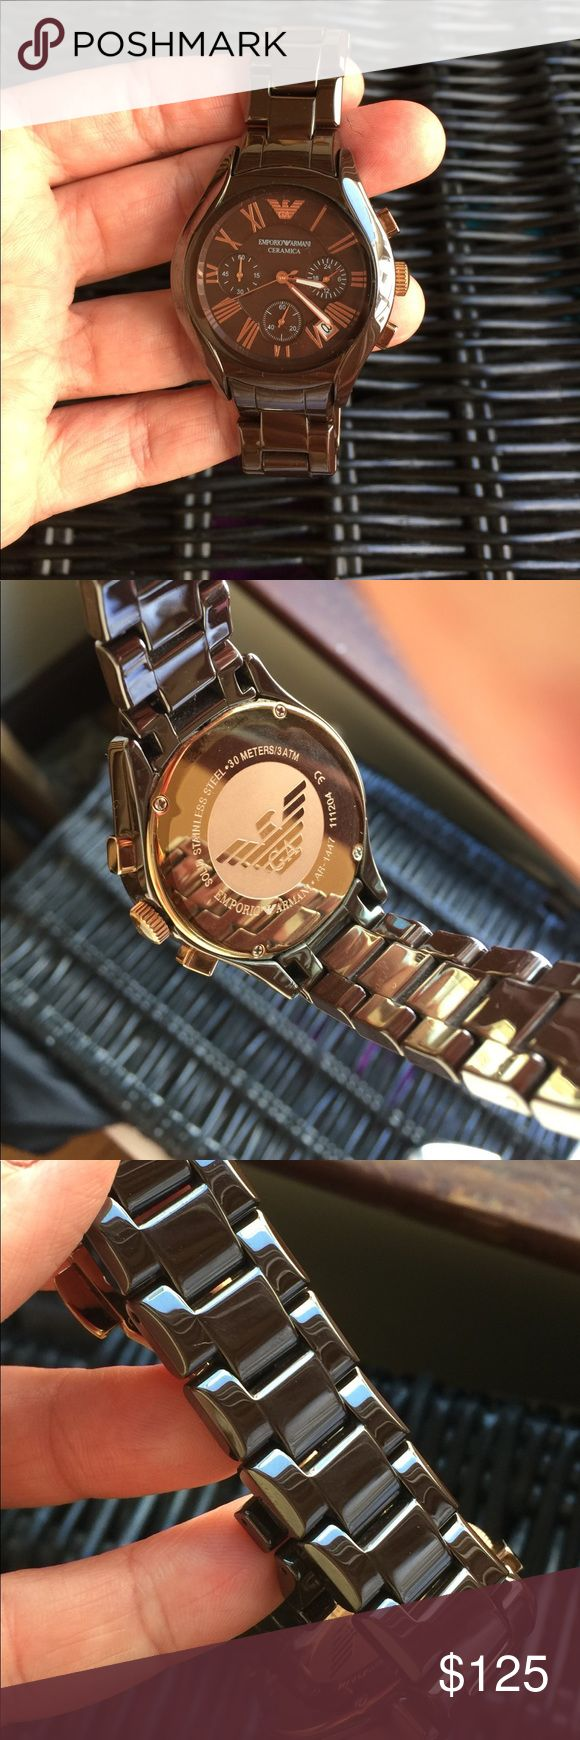 Emotions Armani ceramic watch Gorgeous rich brown color ceramic band, rose gold colored accents. Great condition with no visible scratching. Ships in box with 2 additional links (band can be sized to fit). Needs new battery. Emporio Armani Accessories Watches